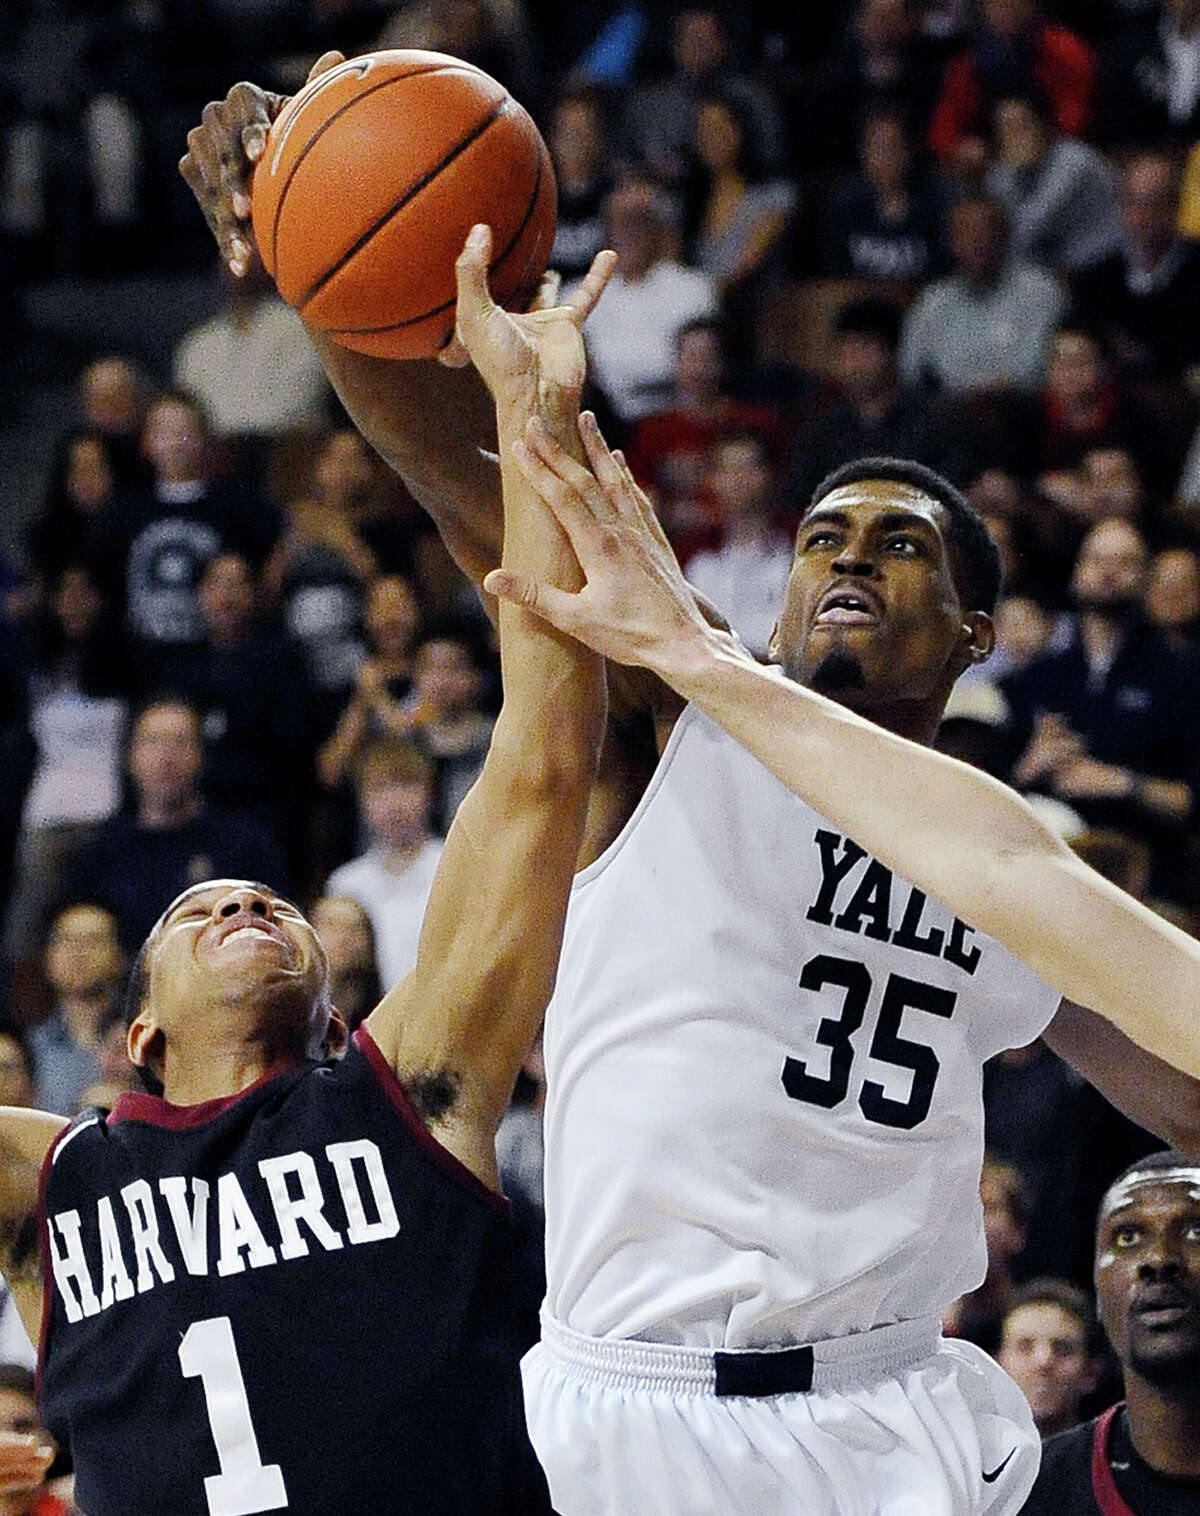 Yale's Brandon Sherrod is the Ivy League player of the week after scoring 24 points in a victory over Brown.